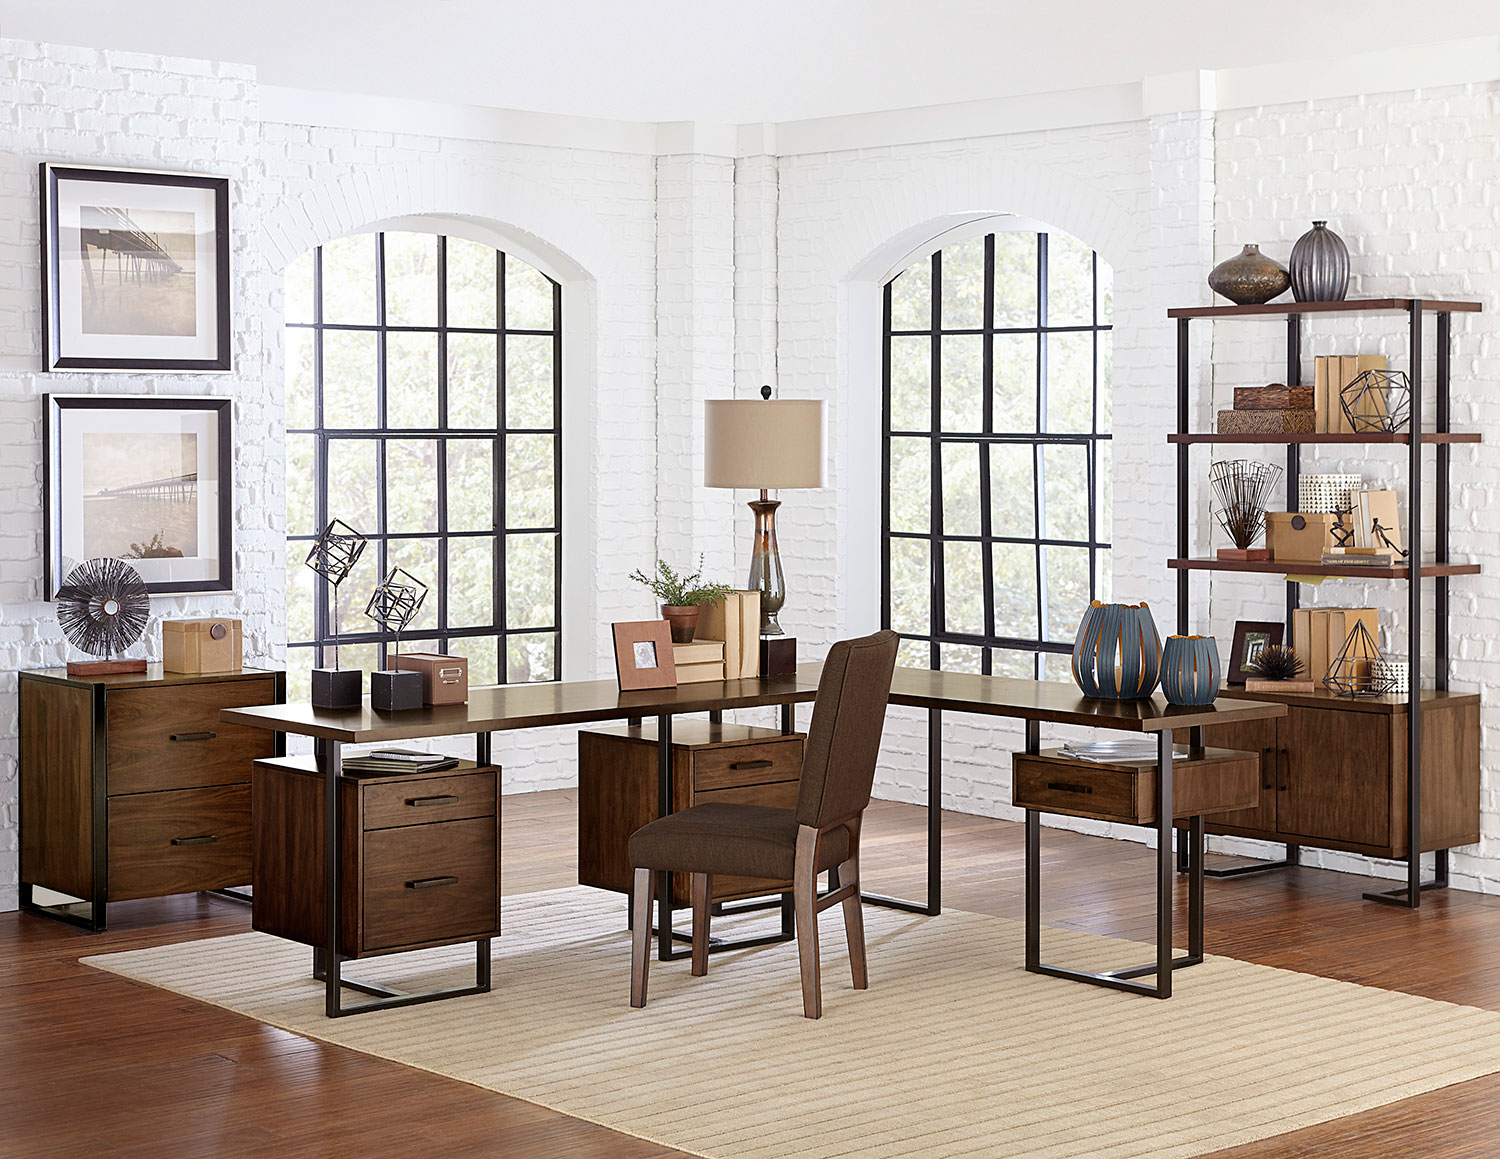 Homelegance Sedley Home Office Set - Walnut